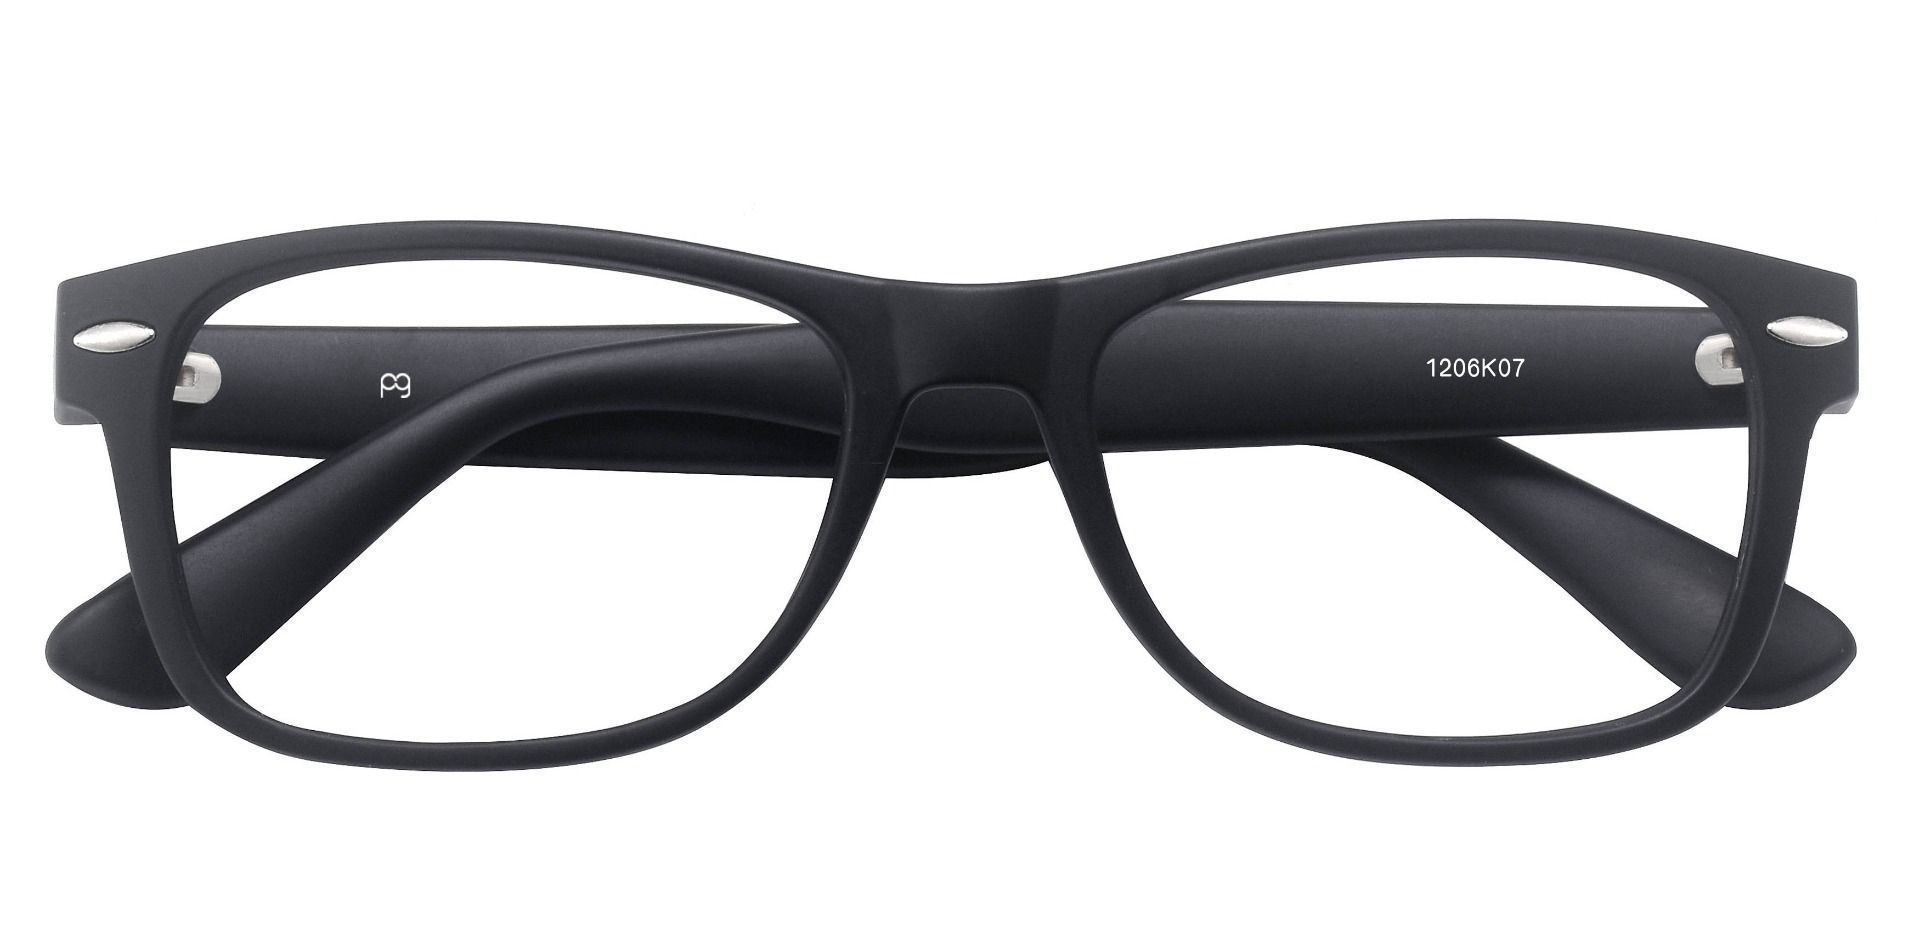 Kent Rectangle Non-Rx Glasses - Black